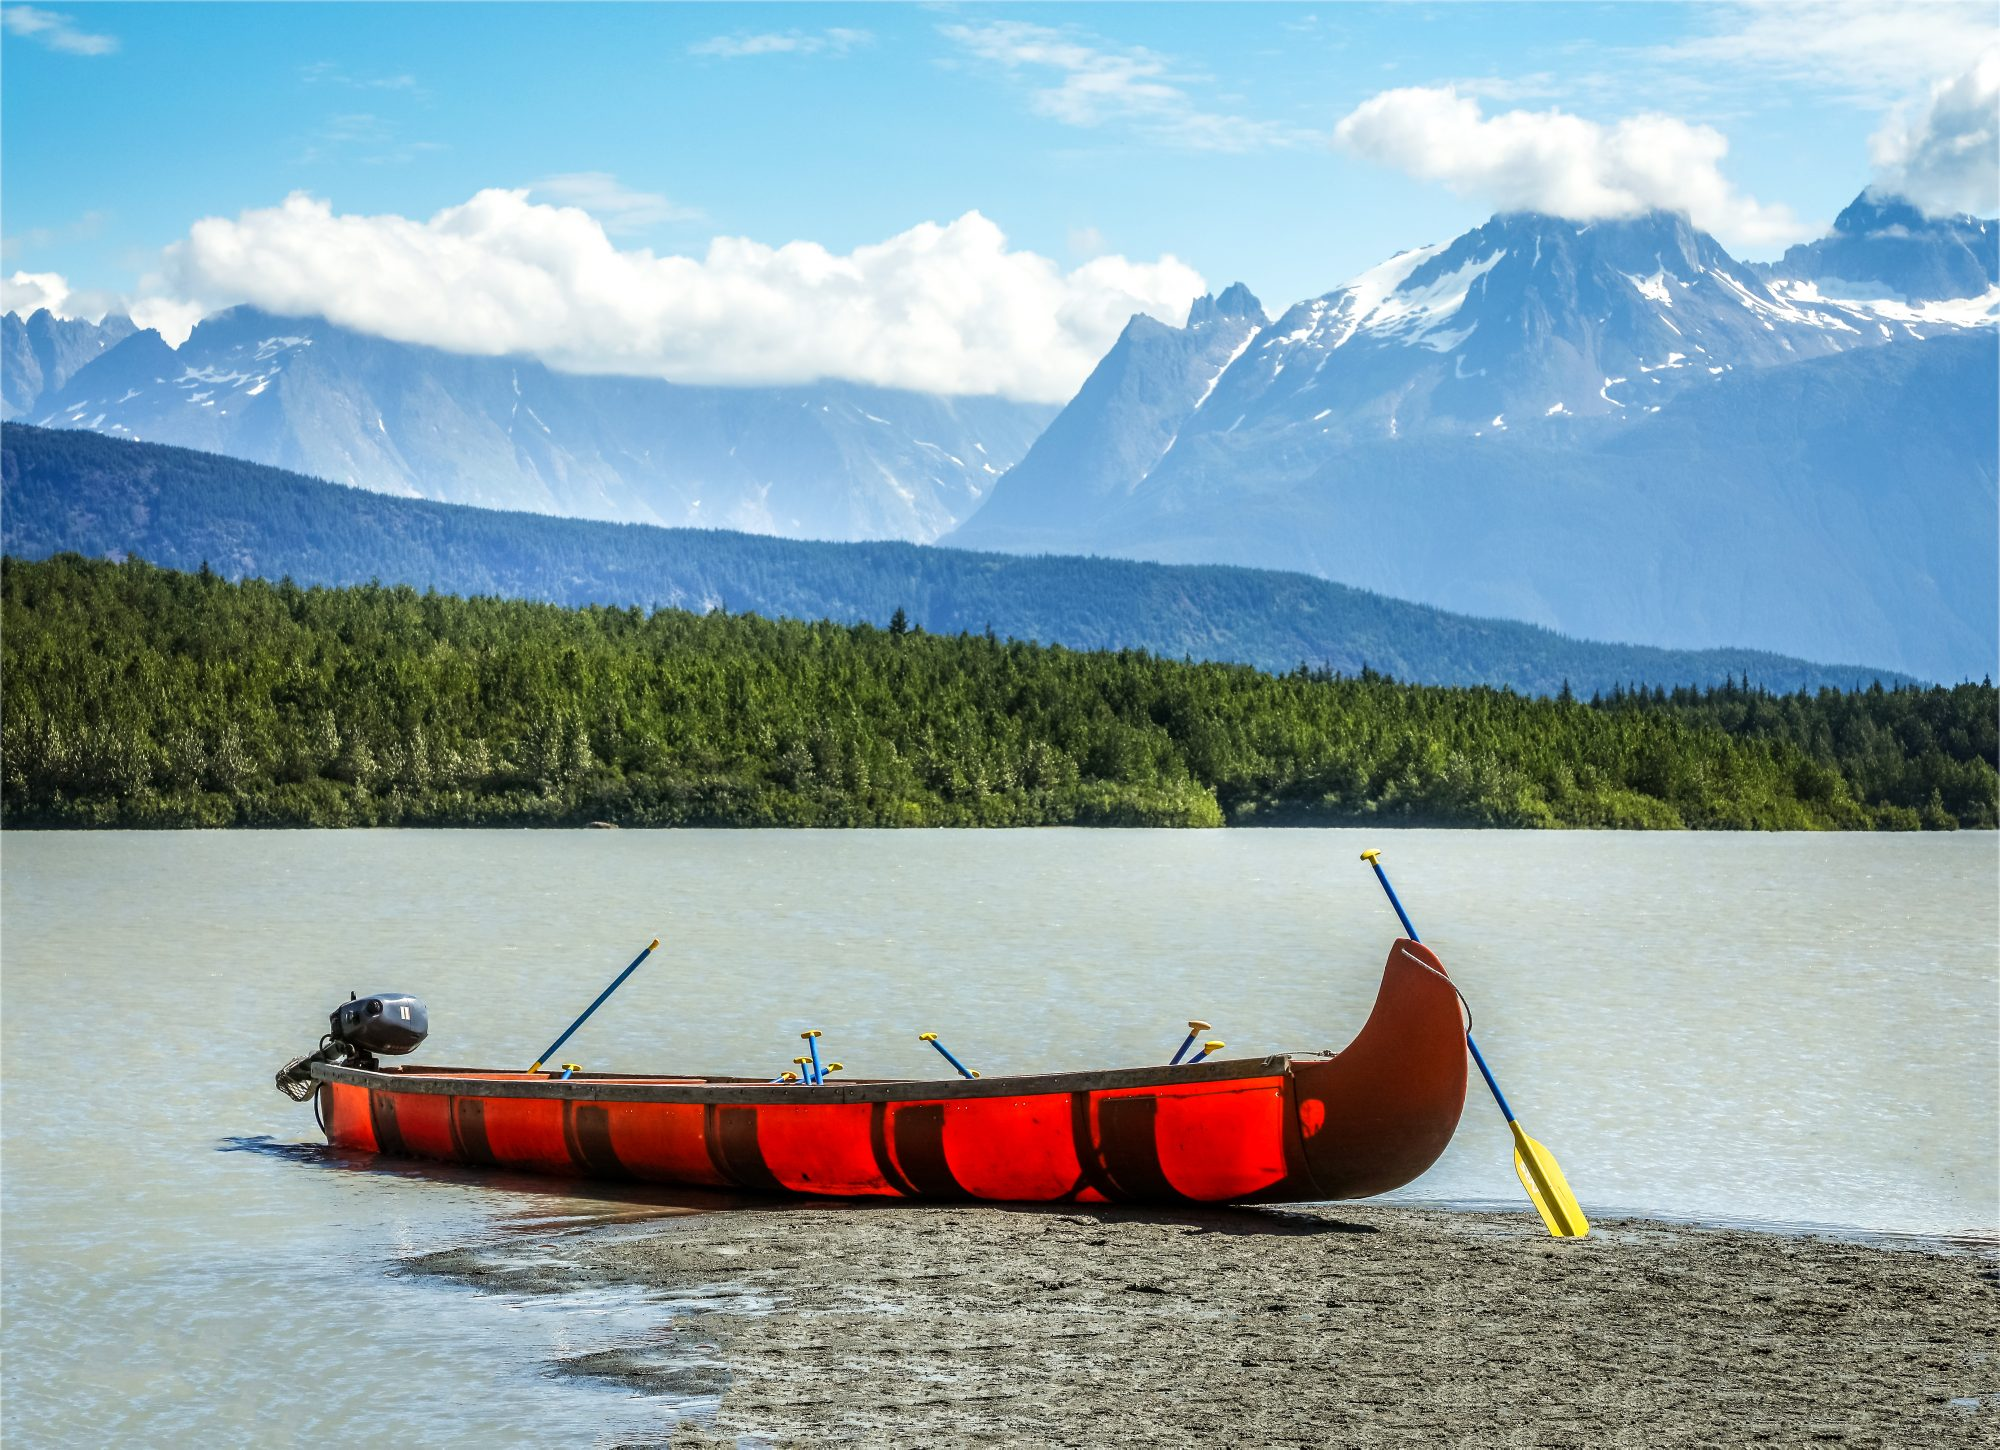 Scenic View Of Lake With A Canoe Against Mountains, Alaska